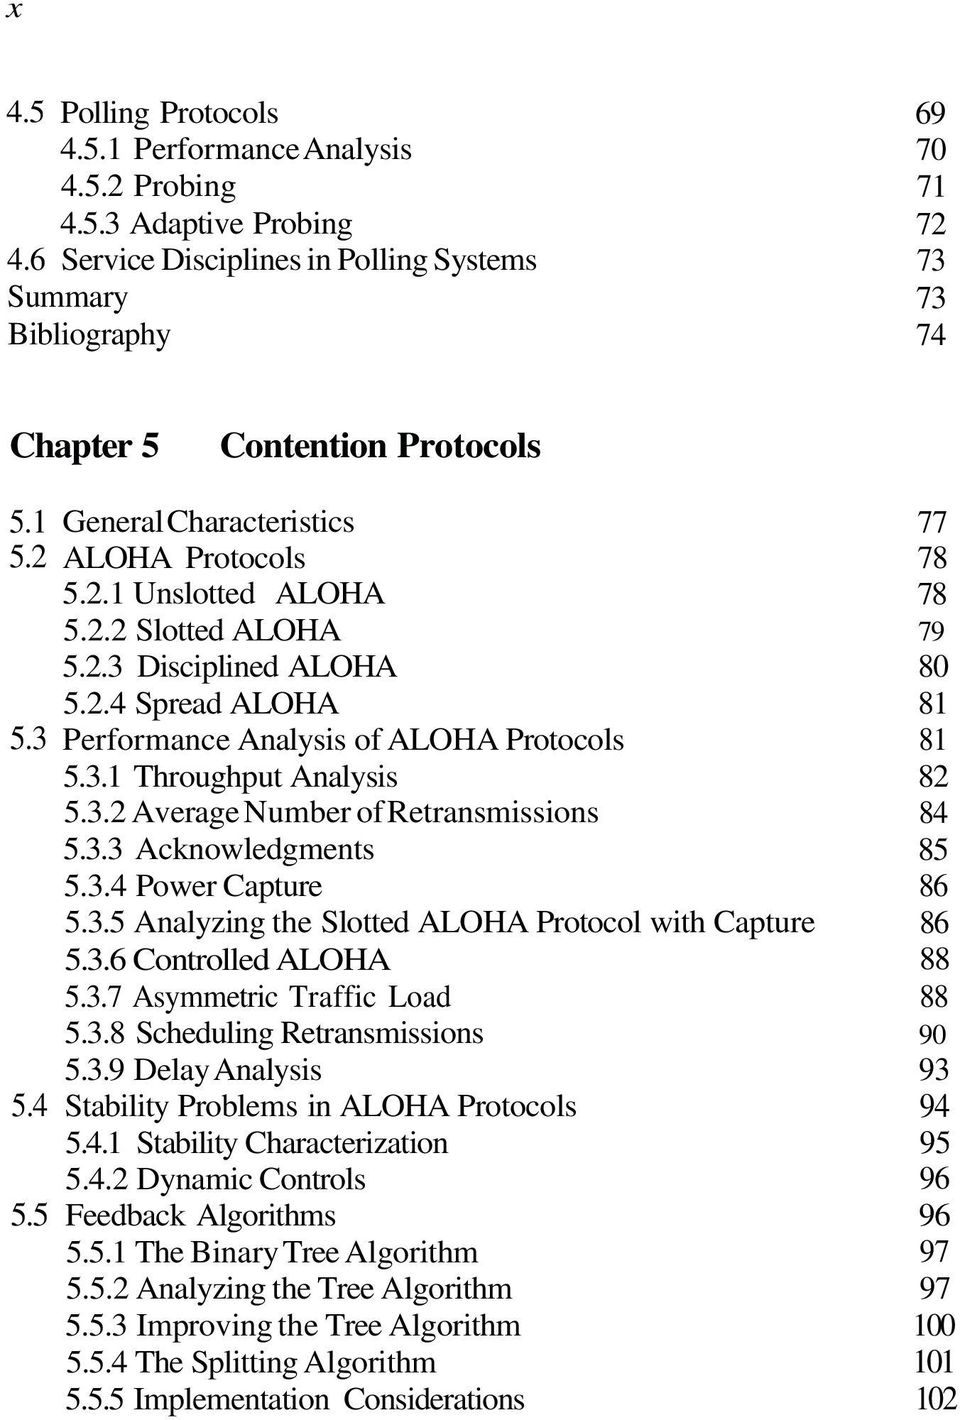 3.3 Acknowledgments 5.3.4 Power Capture 5.3.5 Analyzing the Slotted ALOHA Protocol with Capture 5.3.6 Controlled ALOHA 5.3.7 Asymmetric Traffic Load 5.3.8 Scheduling Retransmissions 5.3.9 Delay Analysis Stability Problems in ALOHA Protocols 5.